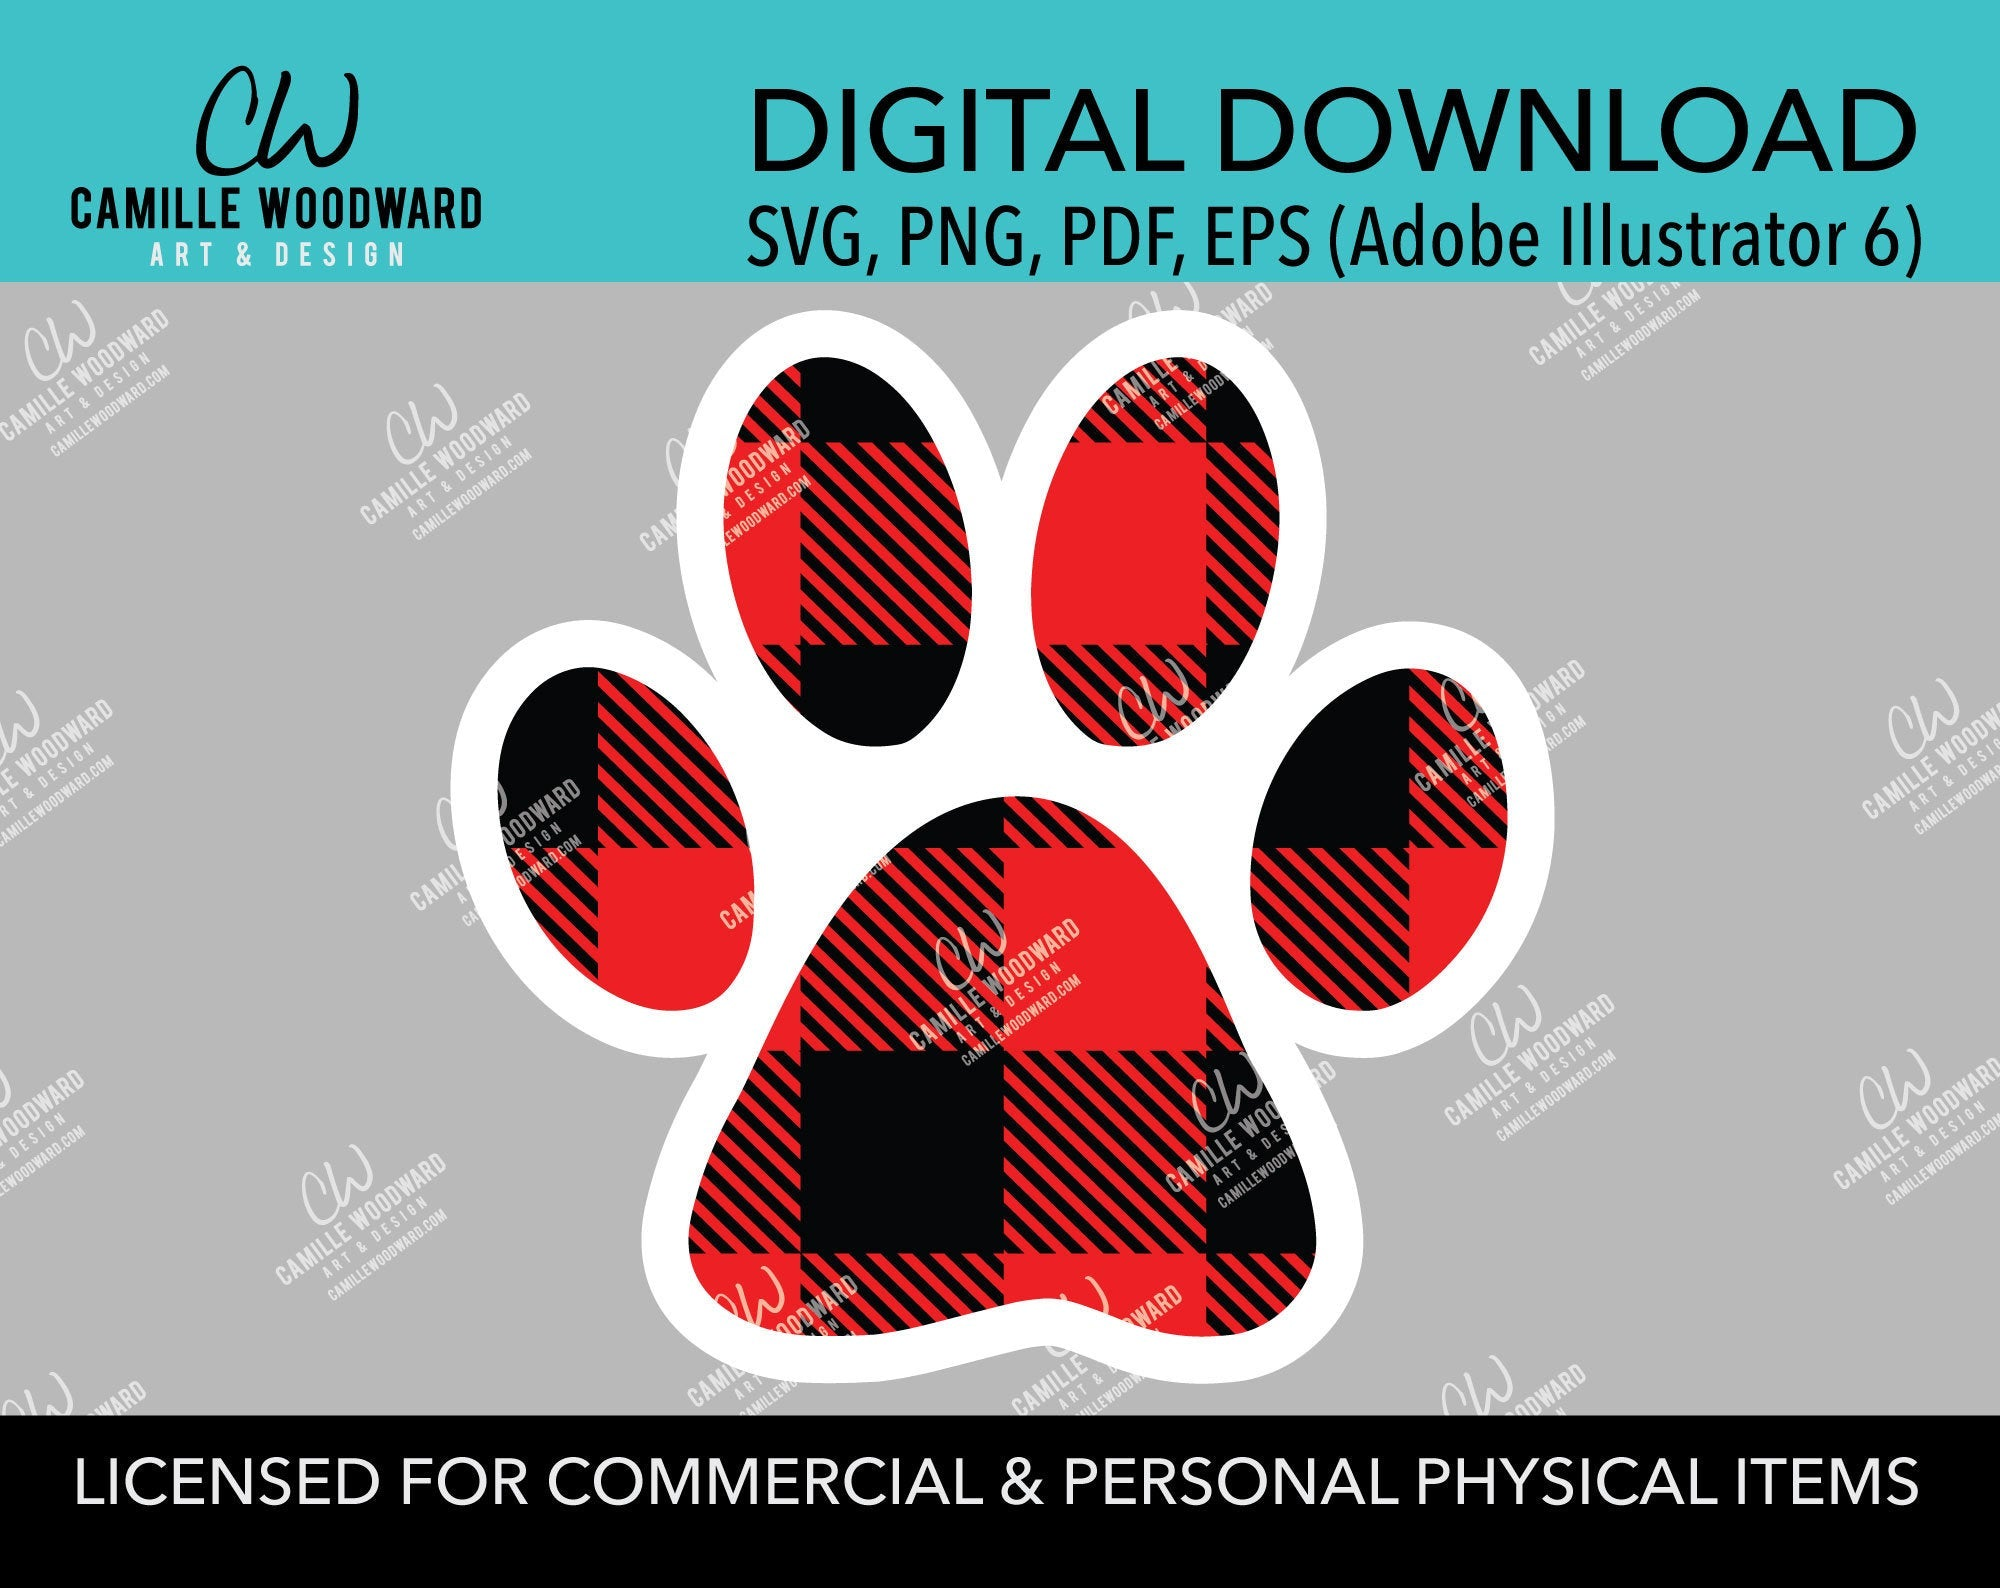 Buffalo Plaid Paw Print Red Black Pads White Outline, SVG, EPS, PNG - Sublimation Digital Download Transparent